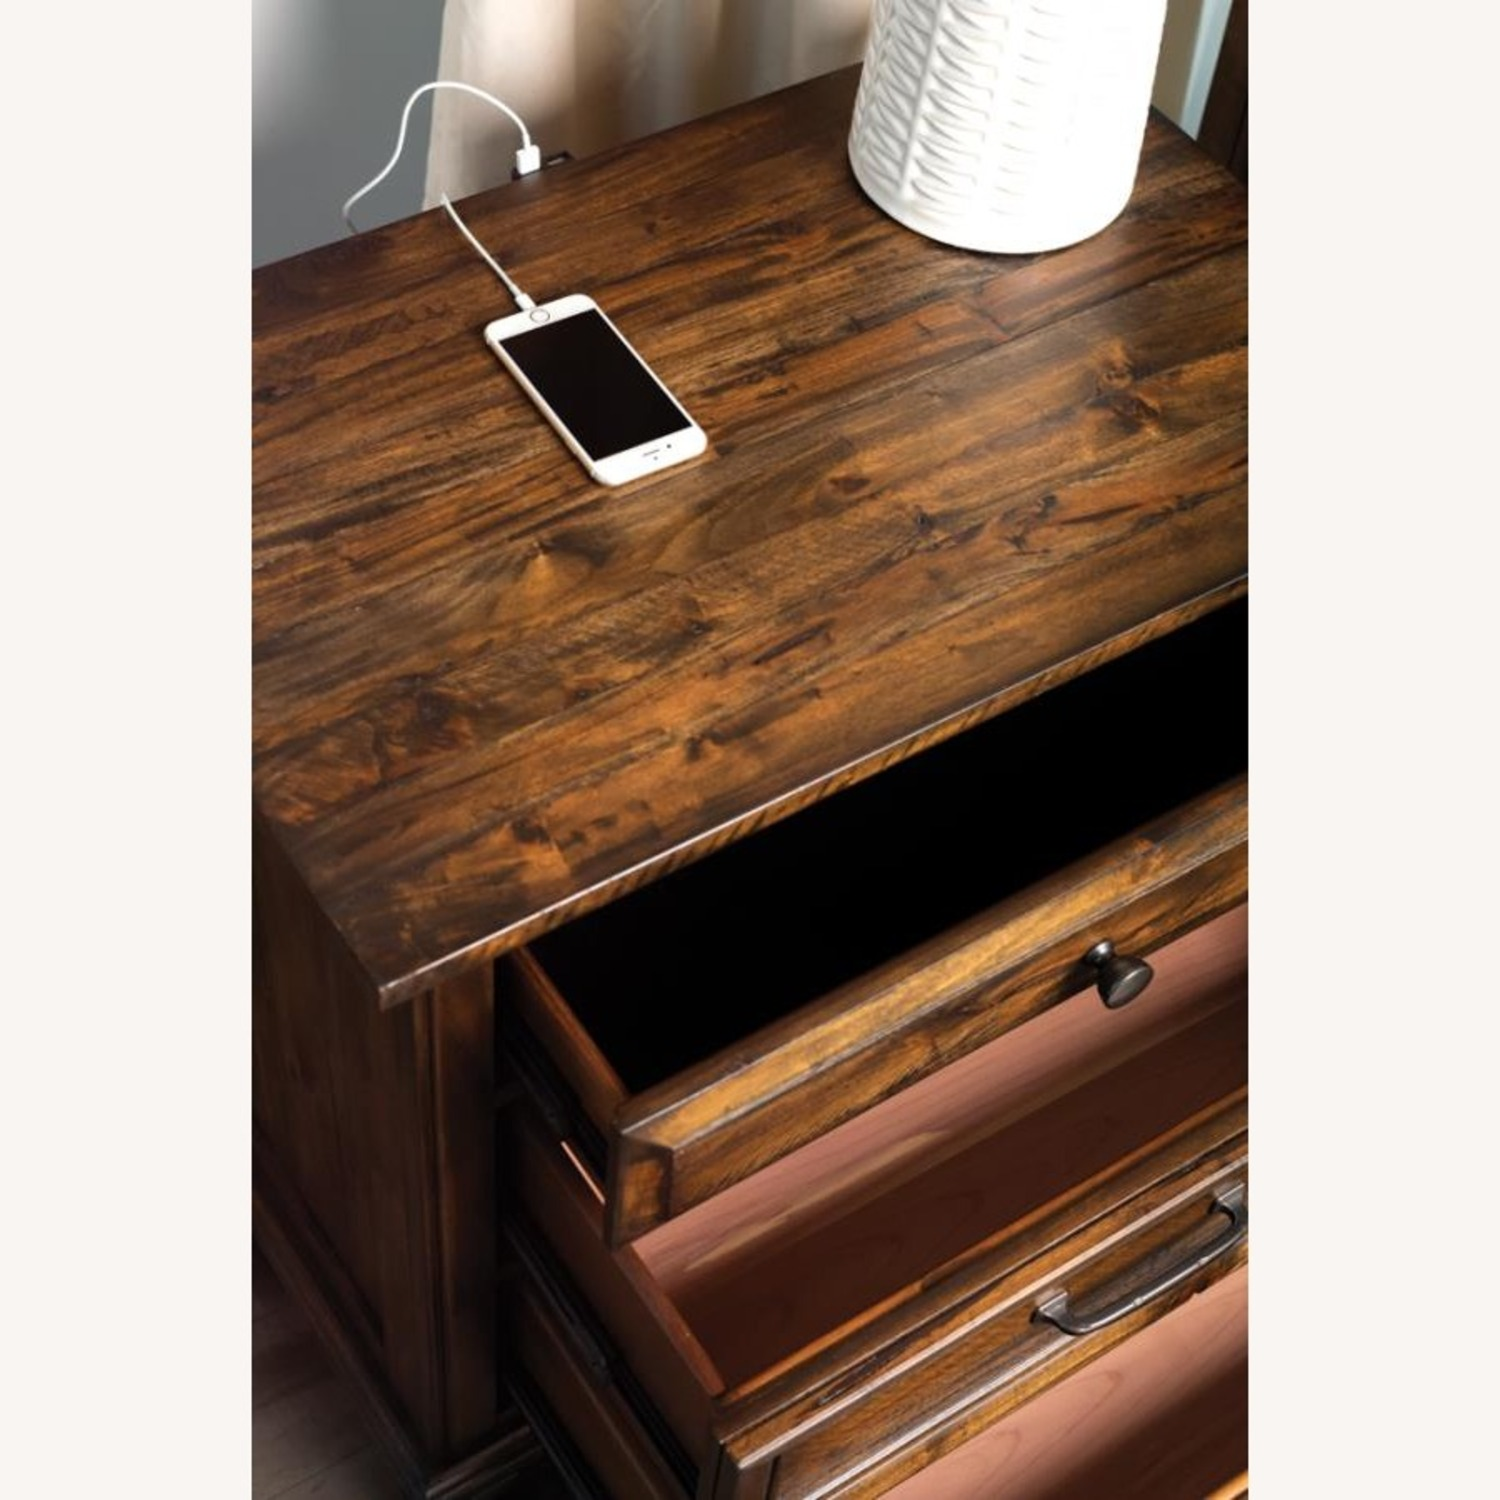 Nightstand W/ USB Port In Weathered Brown Finish - image-1